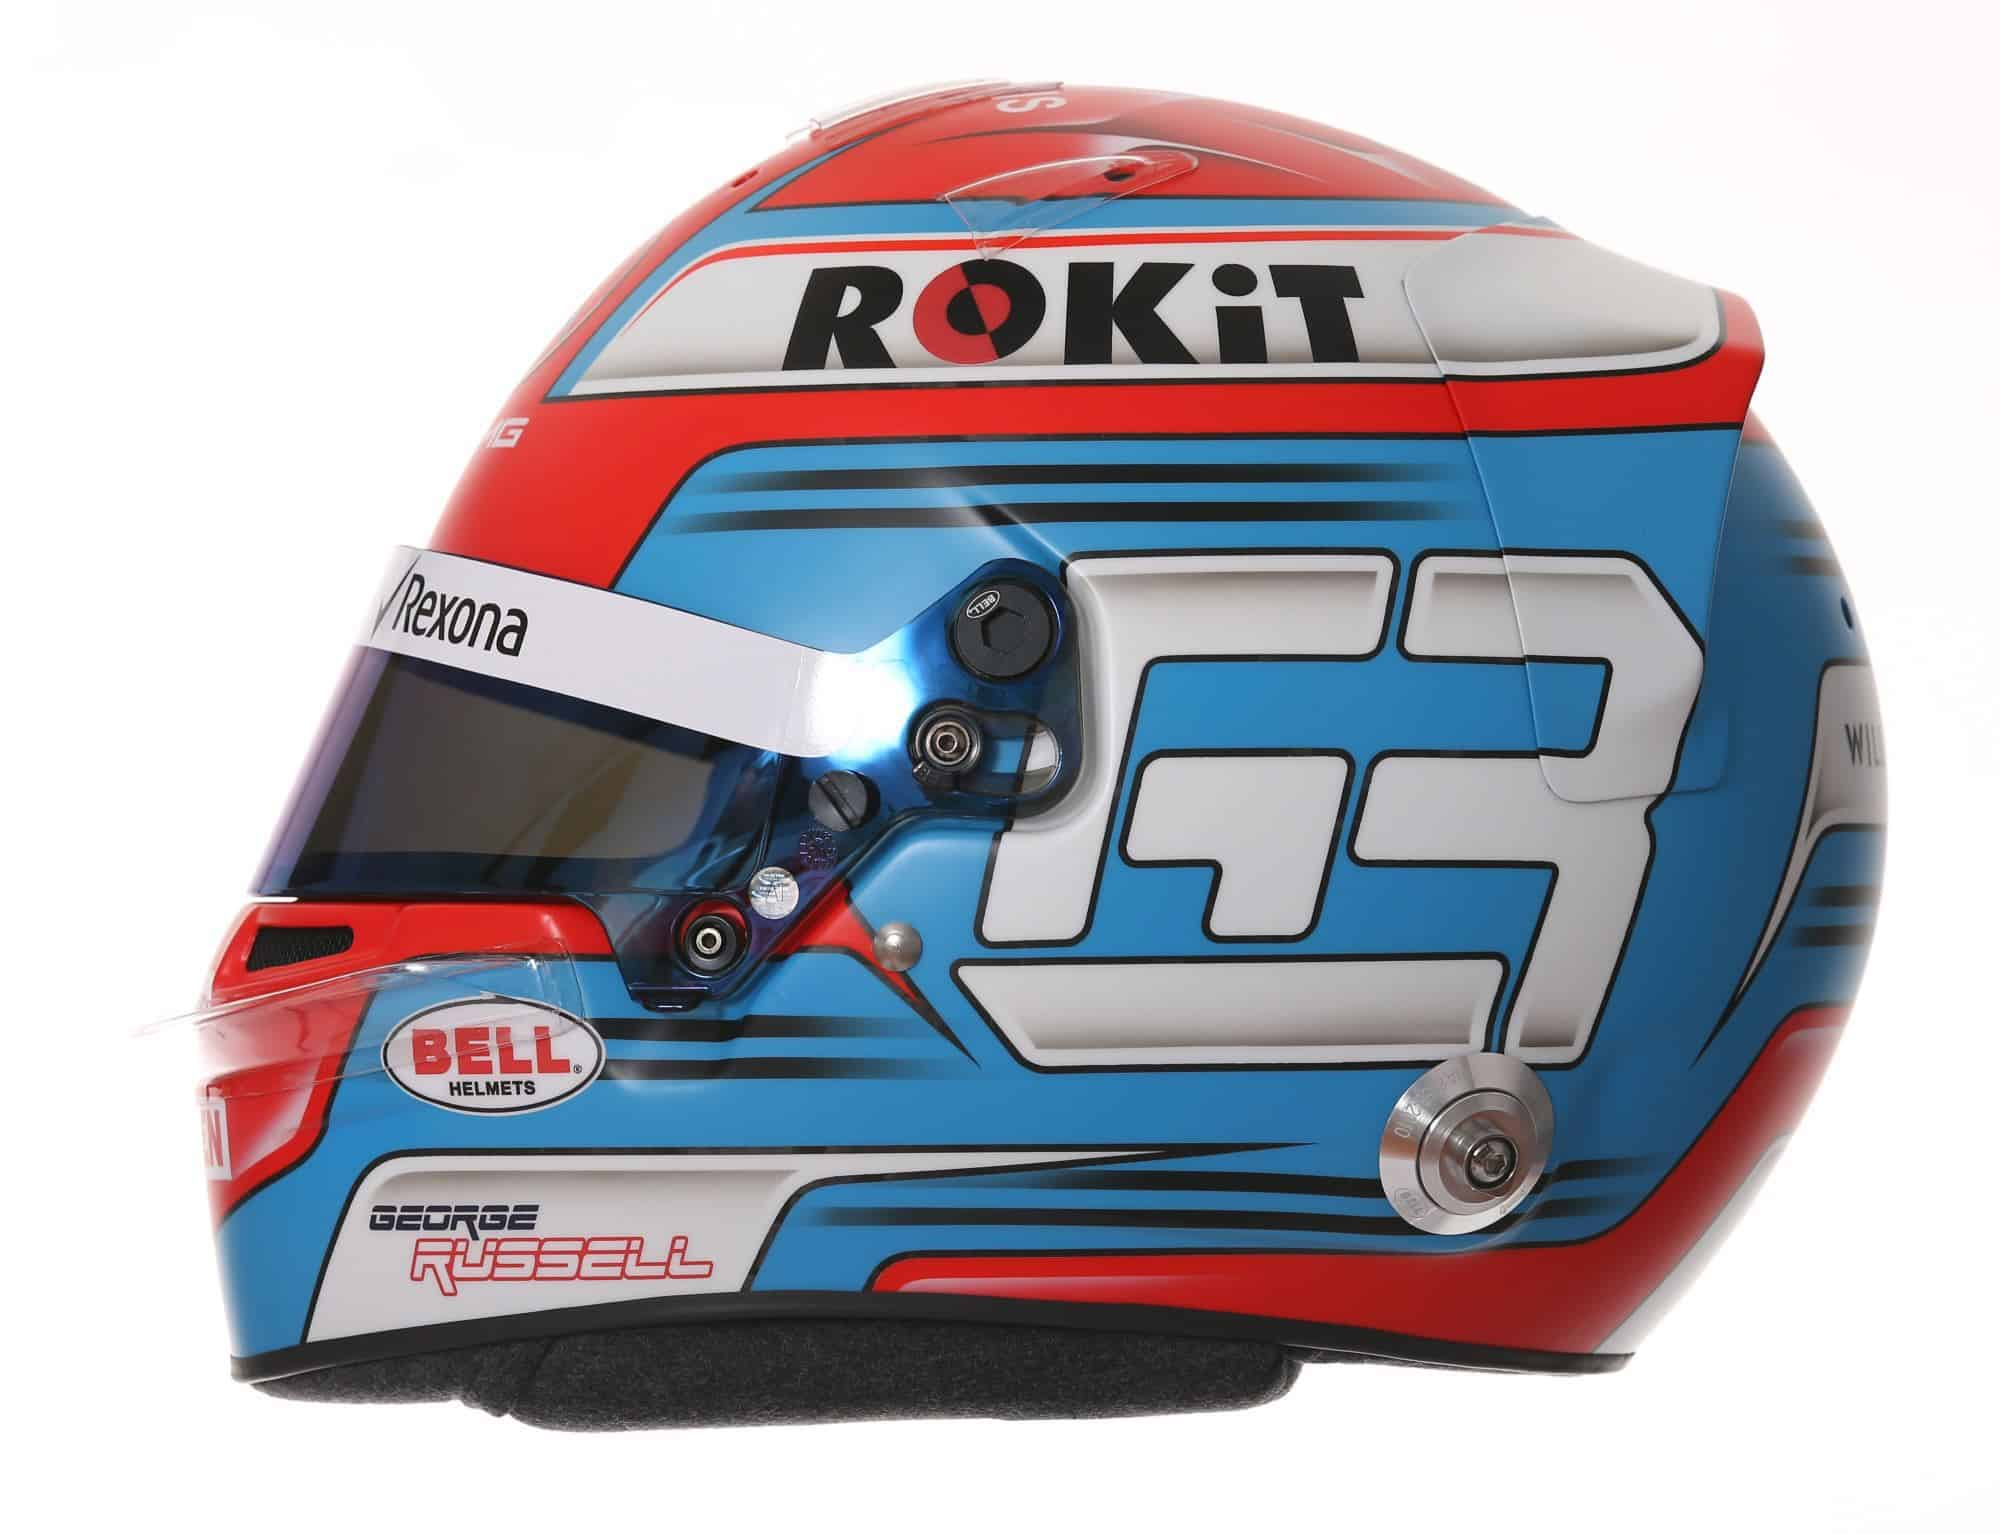 2019 Rokit Williams Racing George Russell helmet left side Photo Williams Edited by MAXF1net